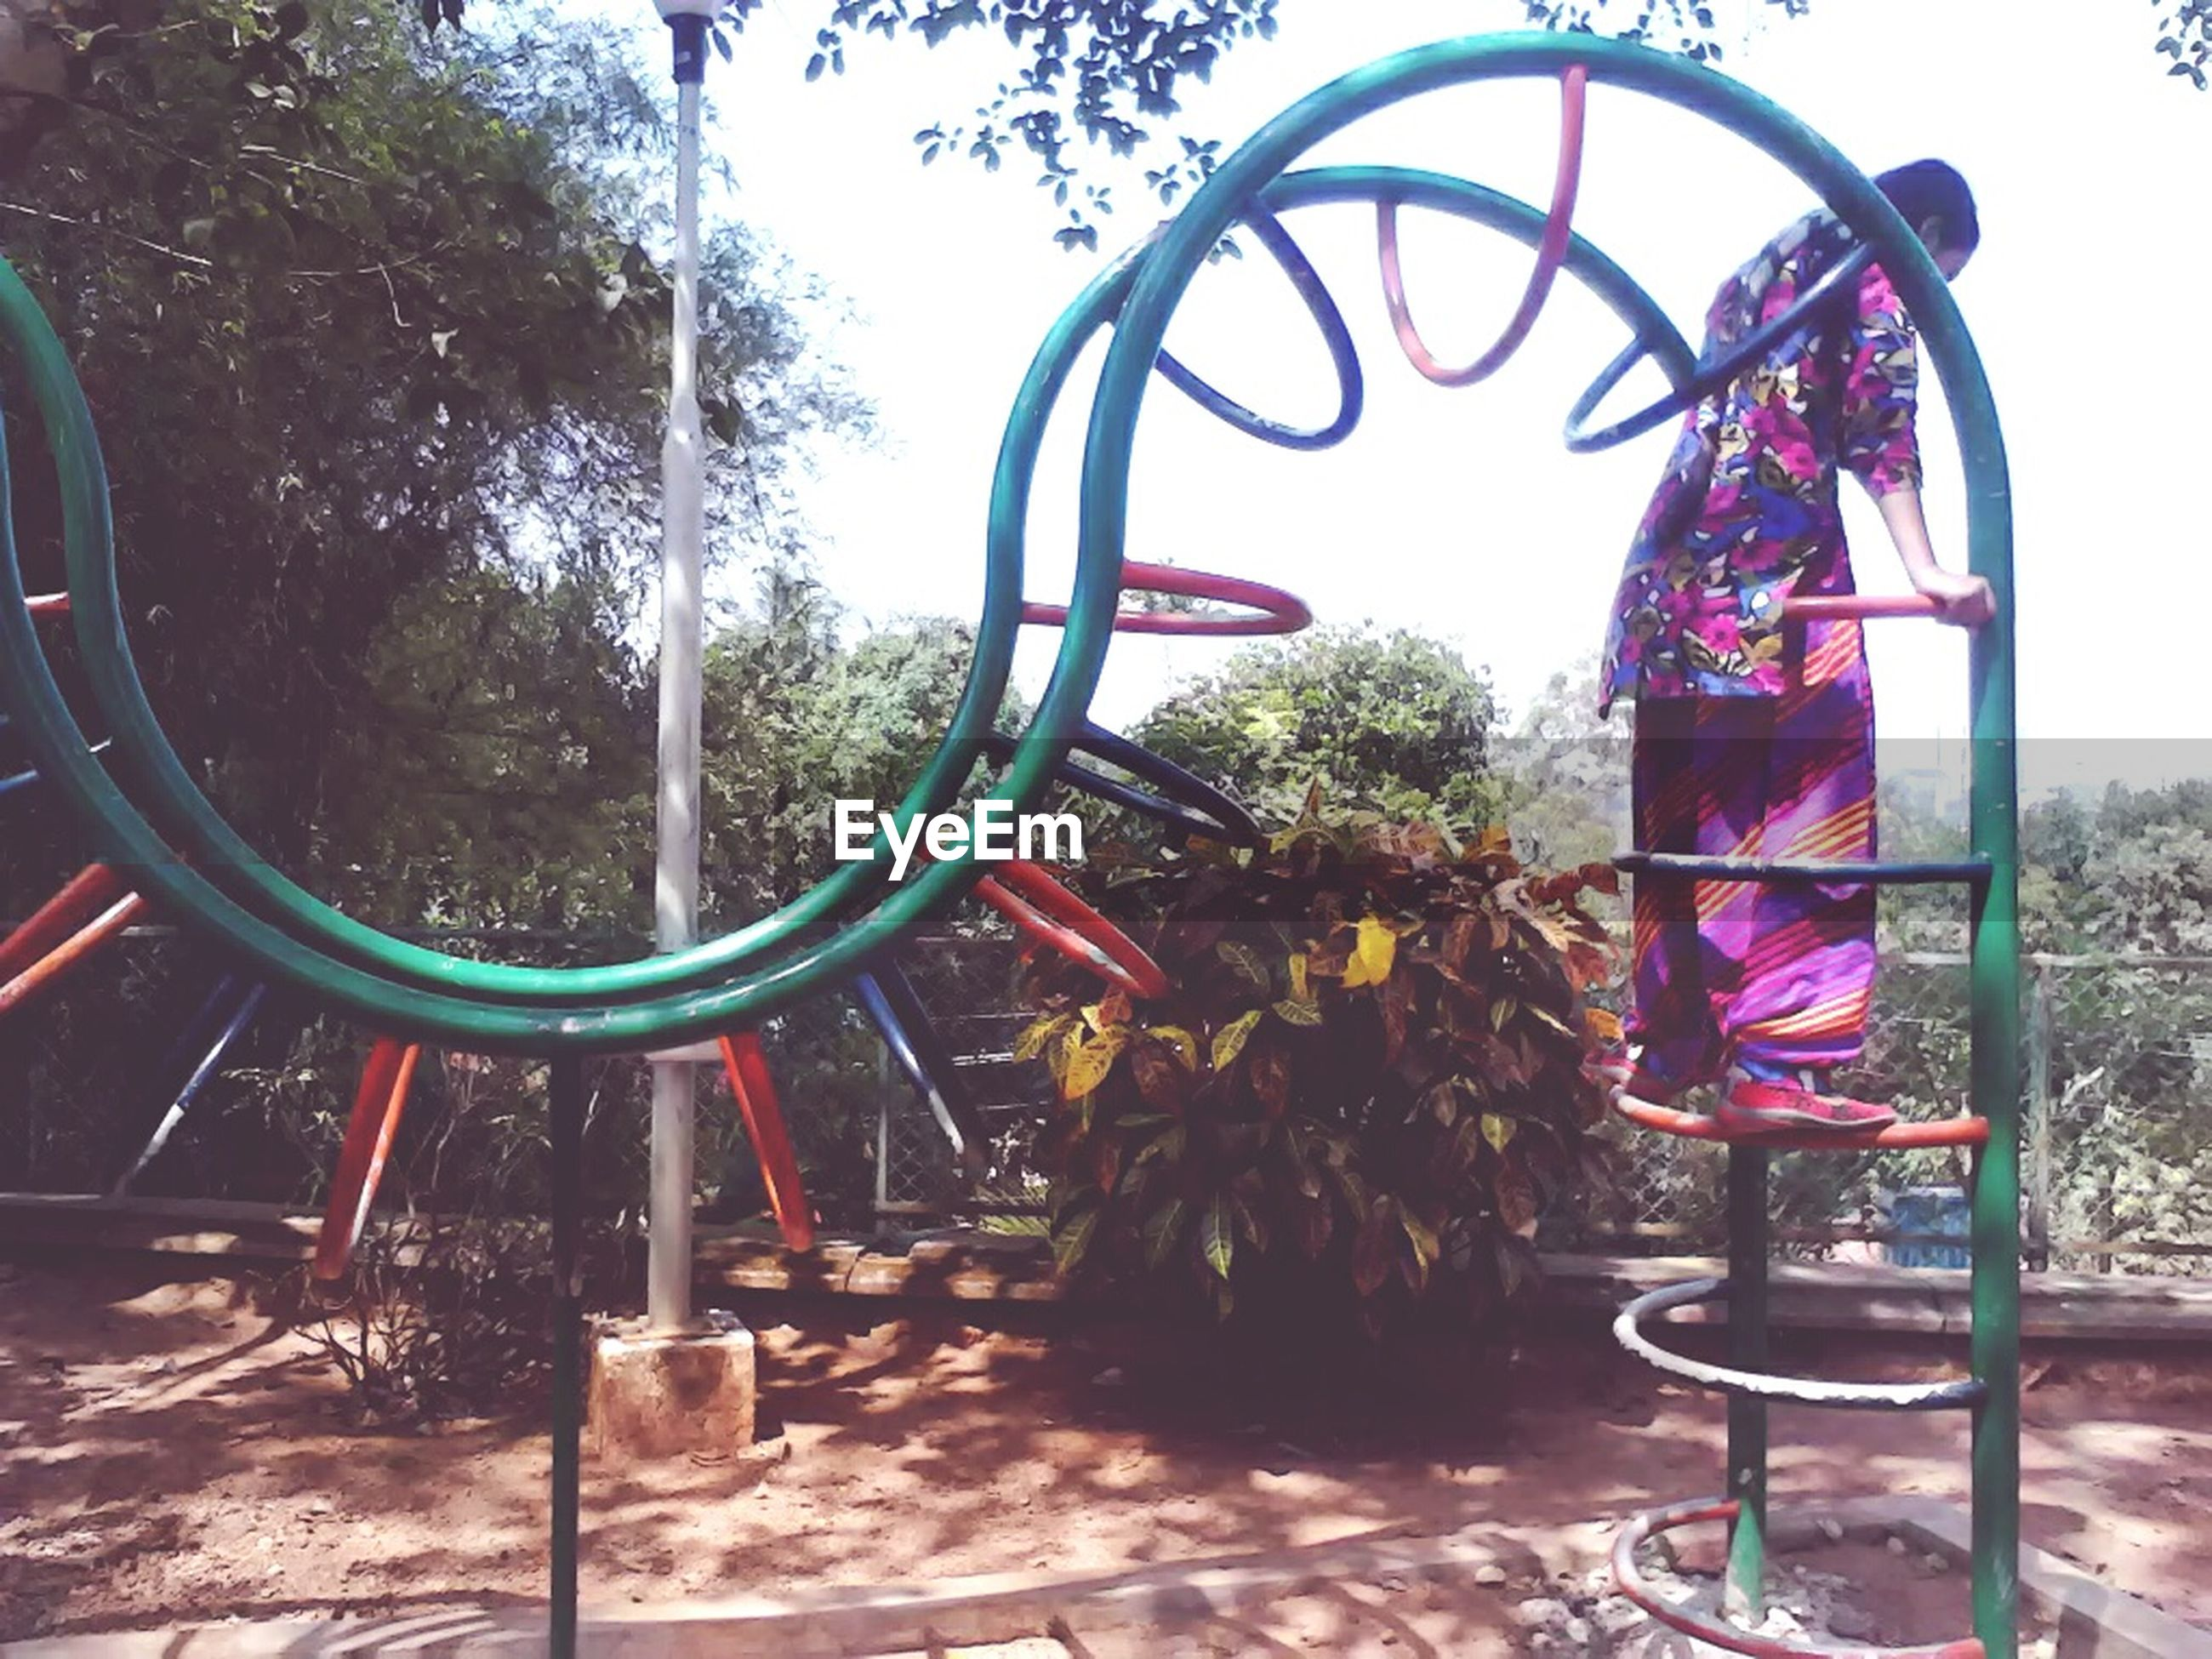 tree, outdoor play equipment, metal, playground, outdoors, day, no people, slide - play equipment, childhood, bicycle rack, nature, jungle gym, tire